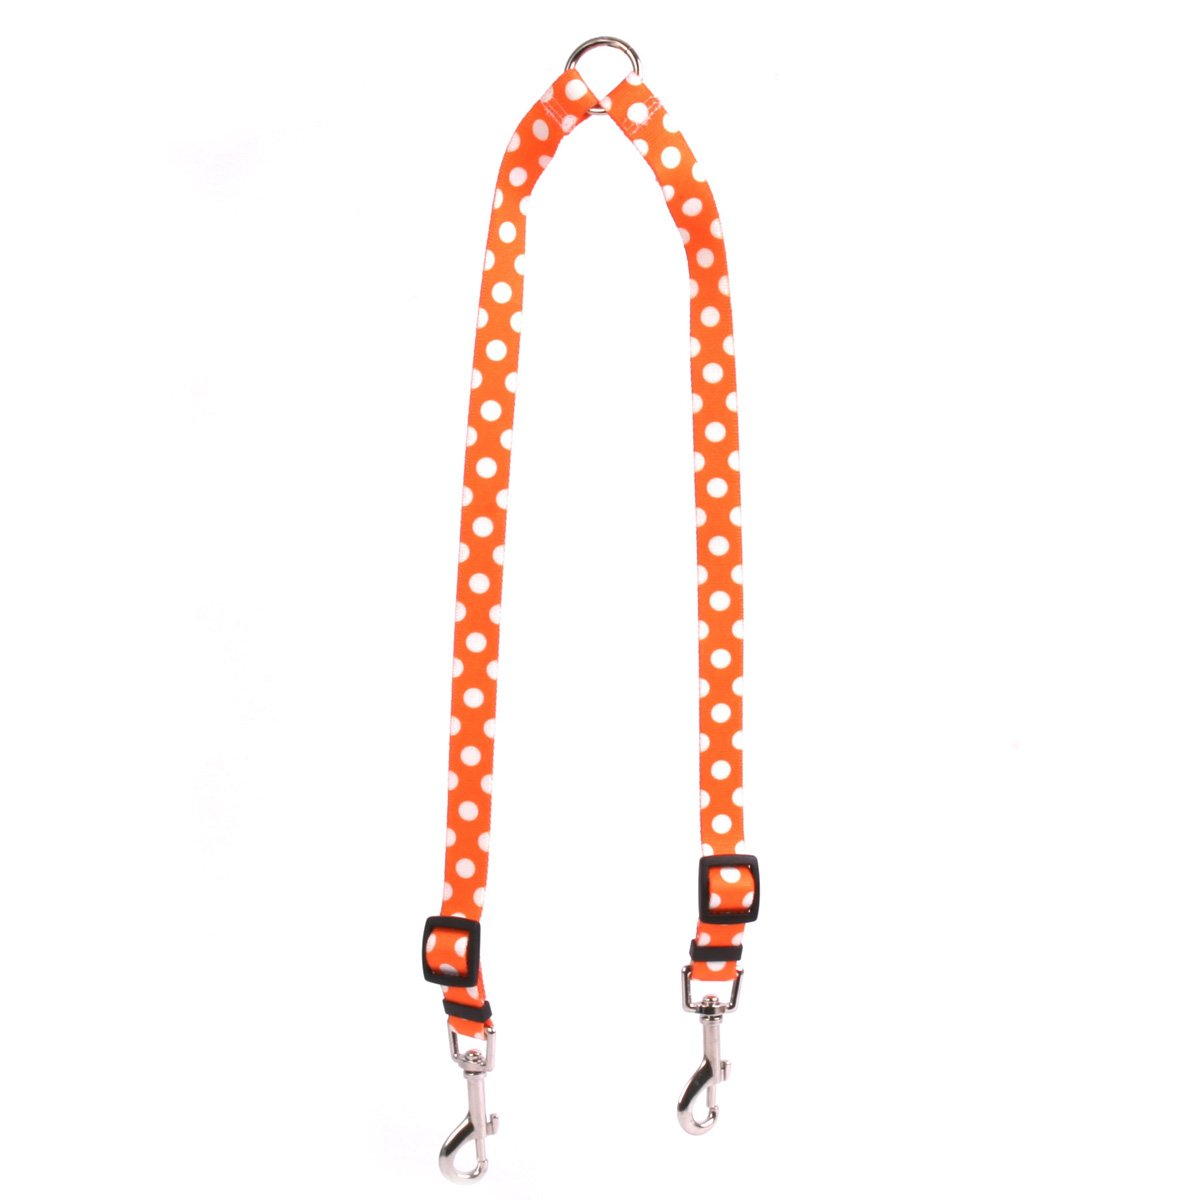 Yellow Dog Design Tangerine Polka Dot Coupler Dog Leash-Size Medium-3/4 inch Wide and 12 to 20 inches Long by Yellow Dog Design